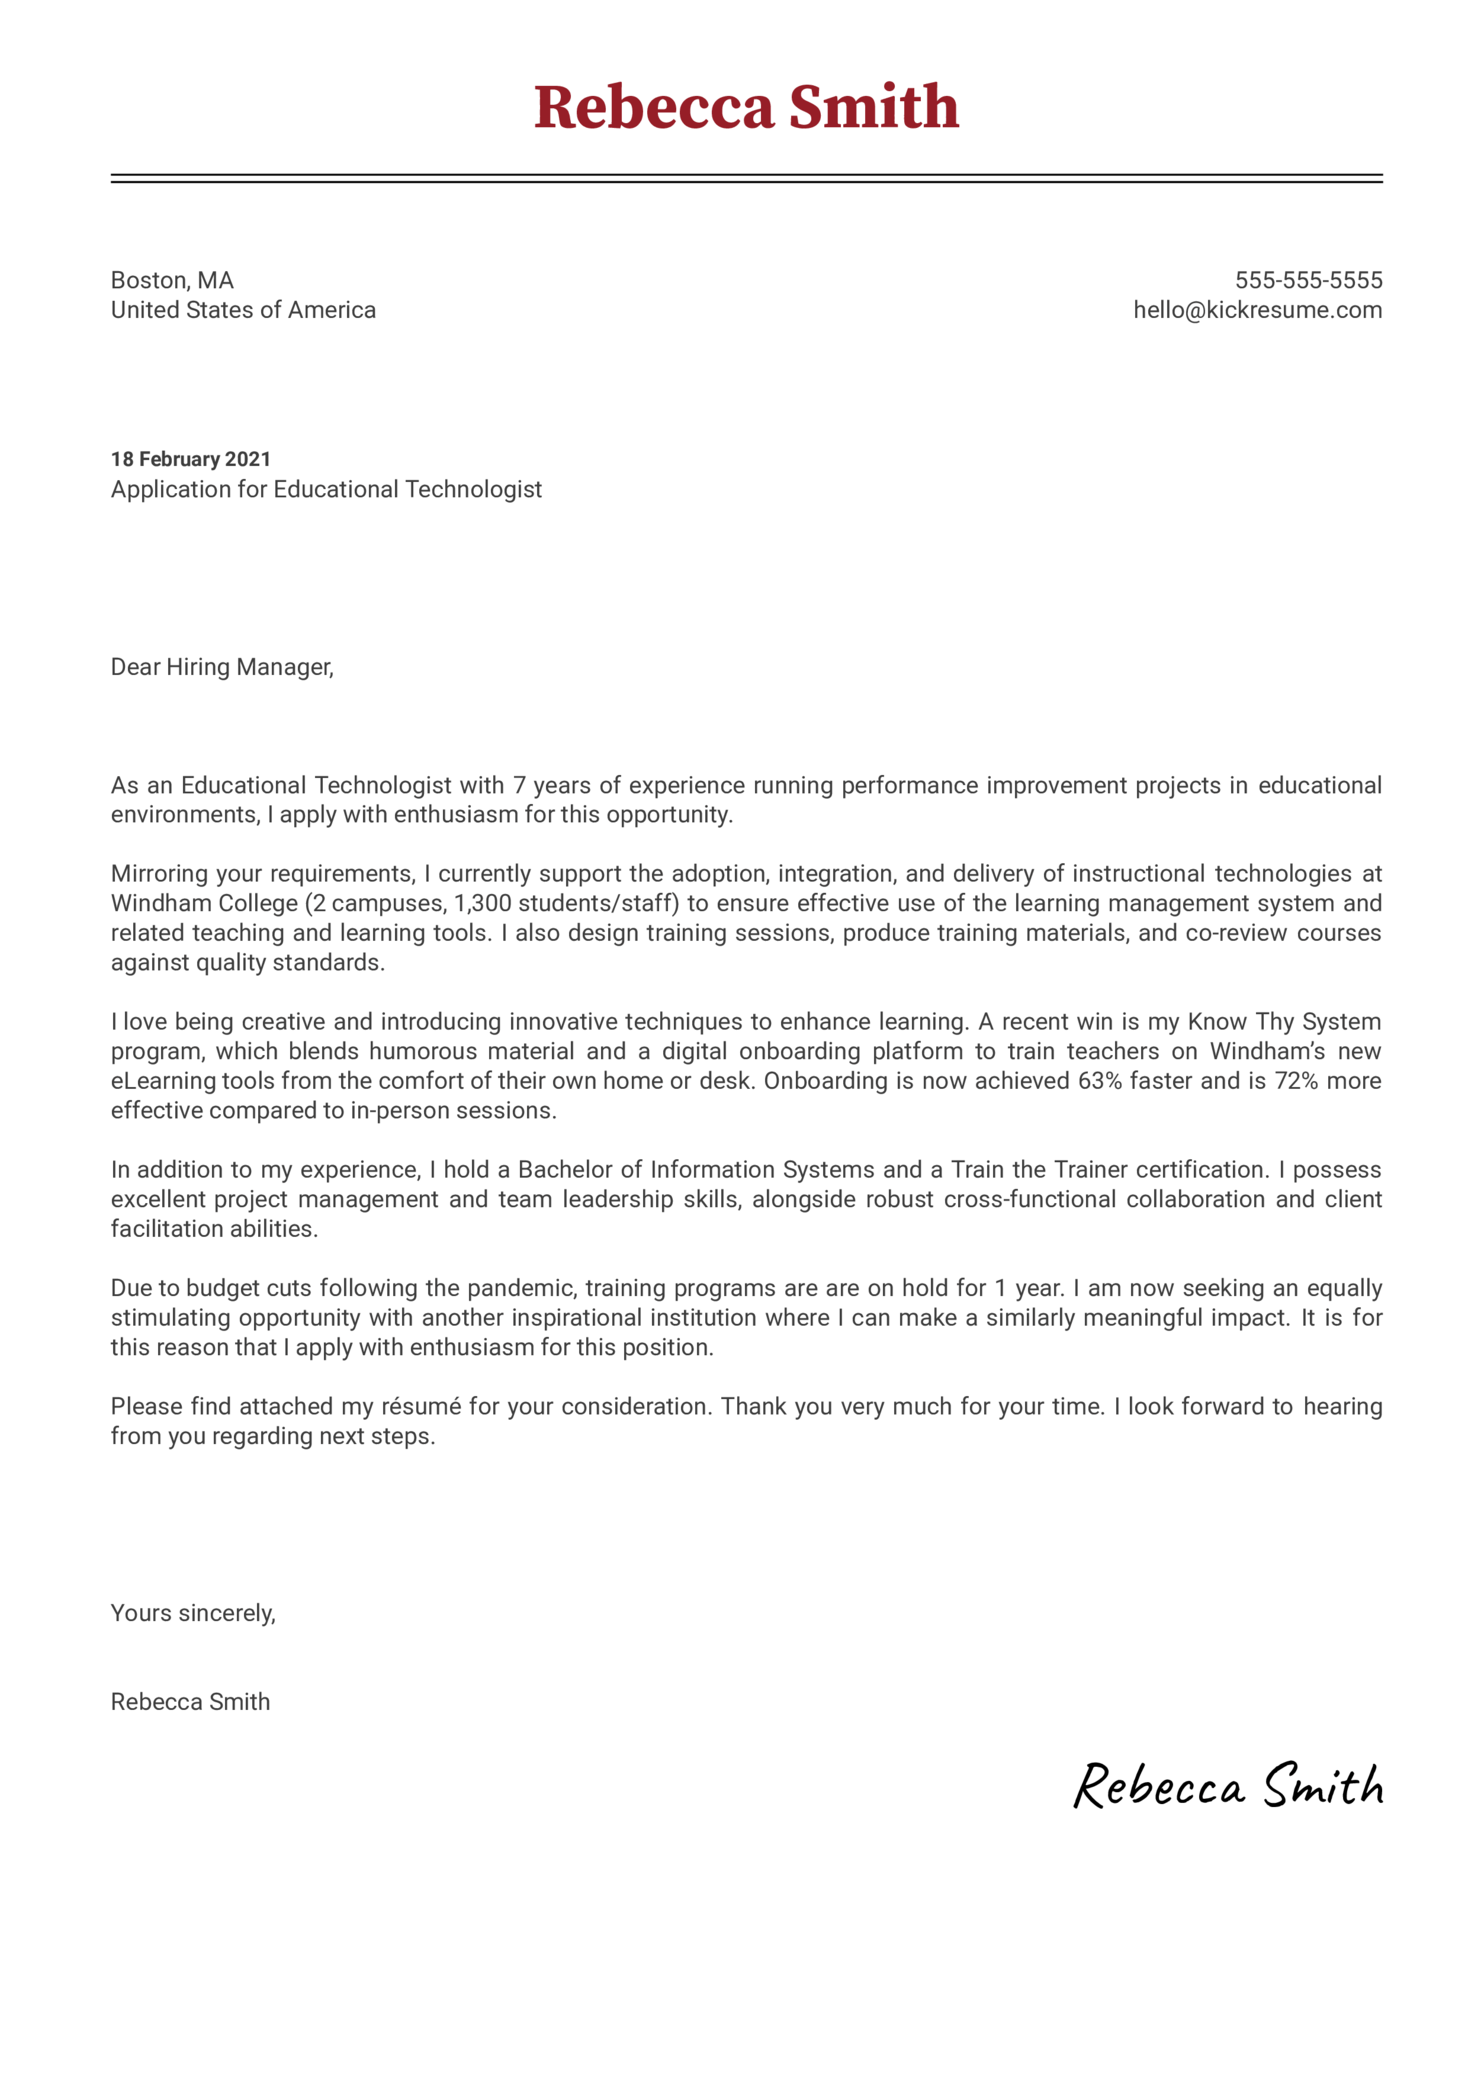 Educational Technologist Cover Letter Example